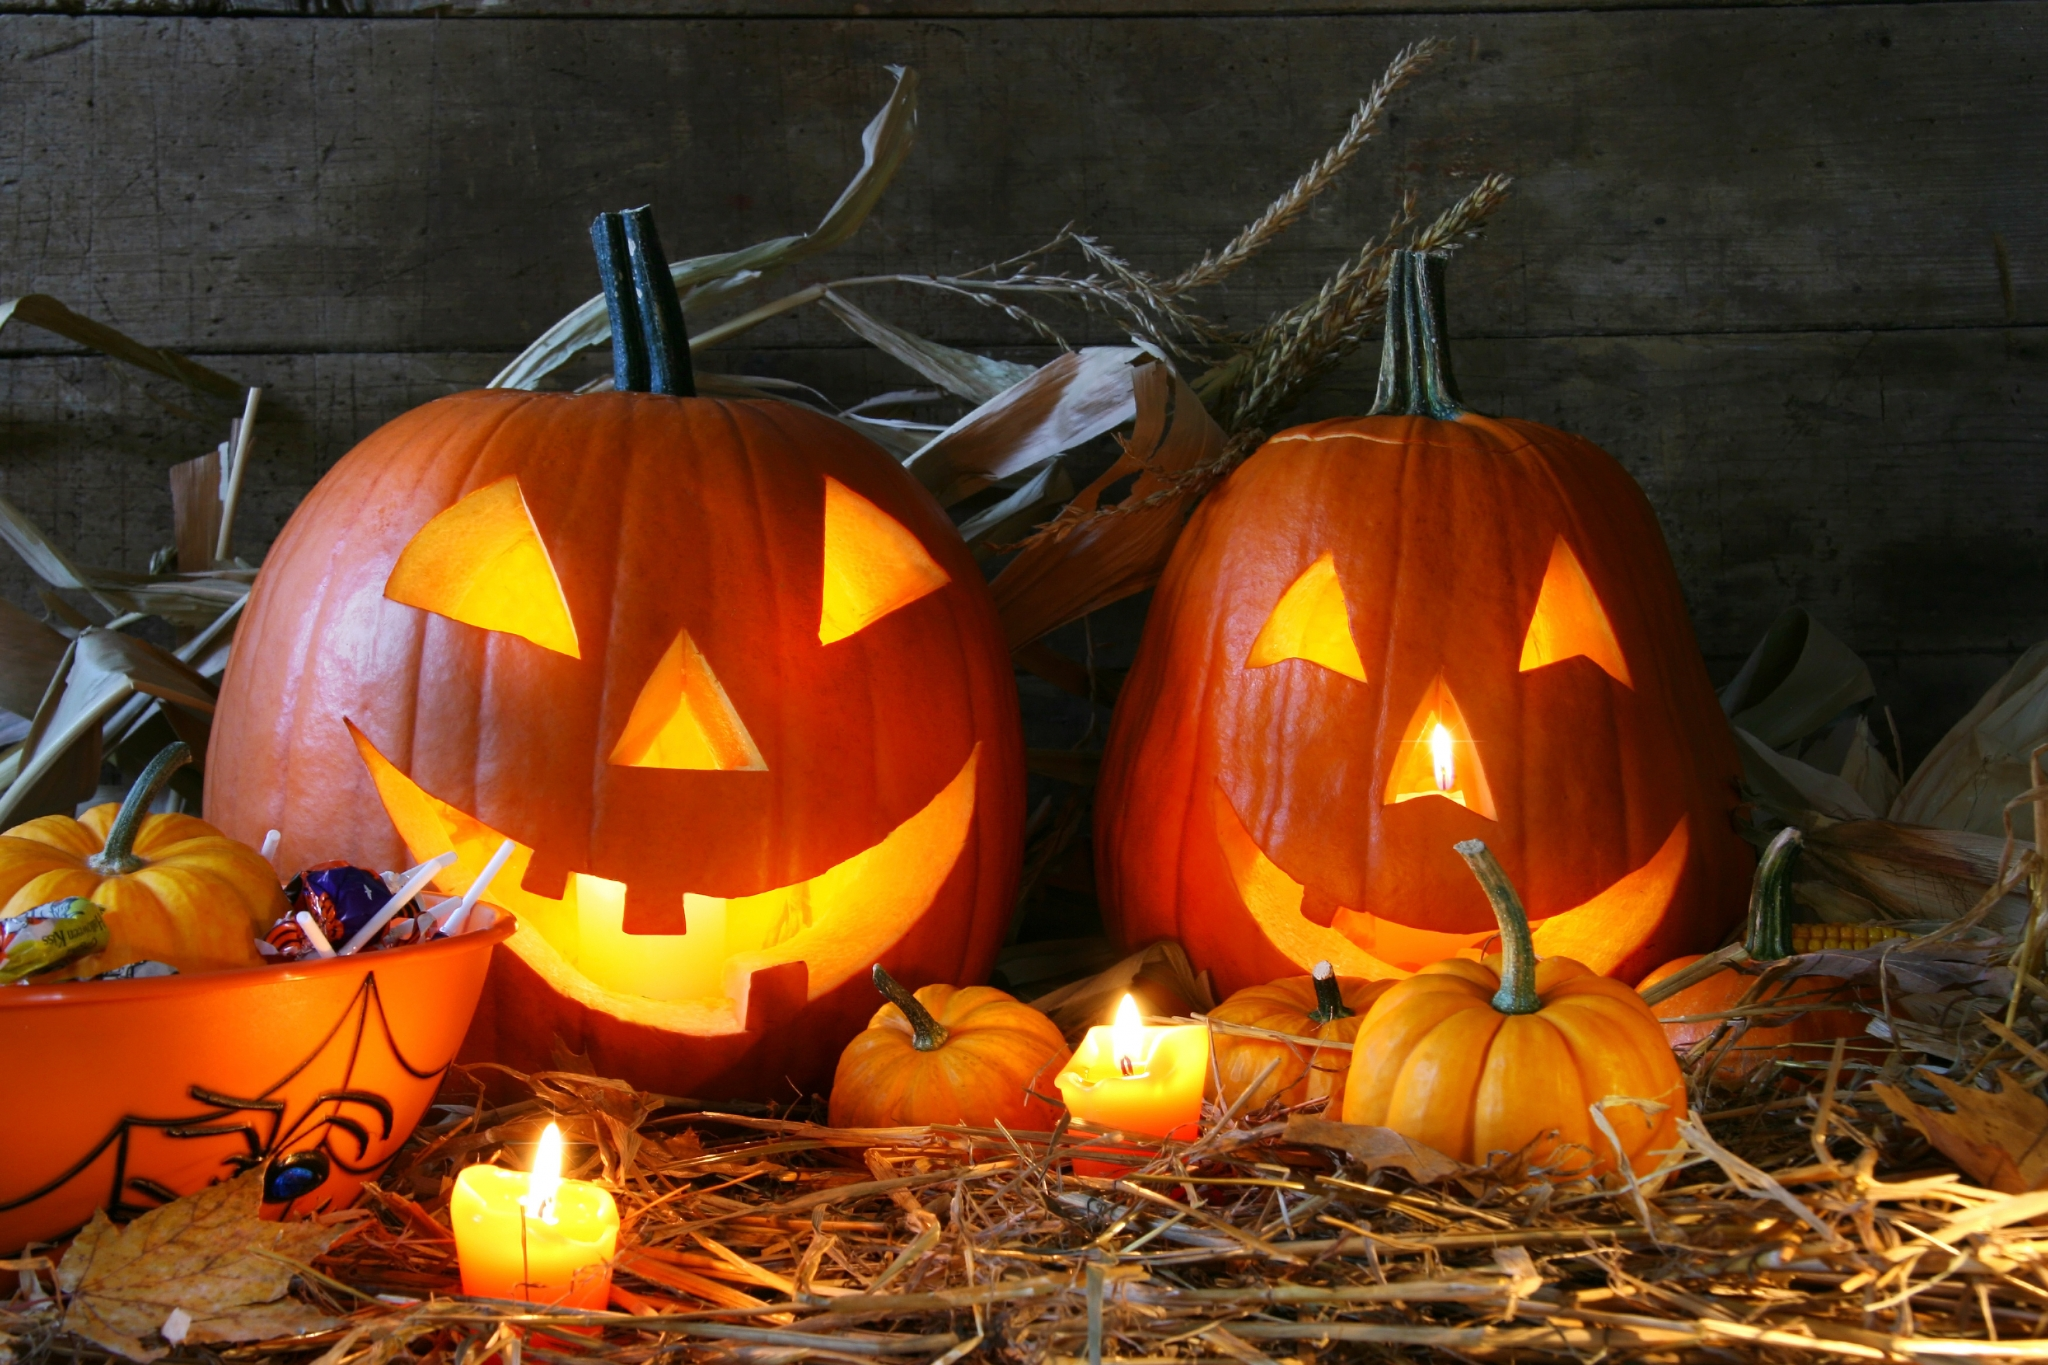 Helloween hd wallpapers free download - Calabazas decoradas para halloween ...